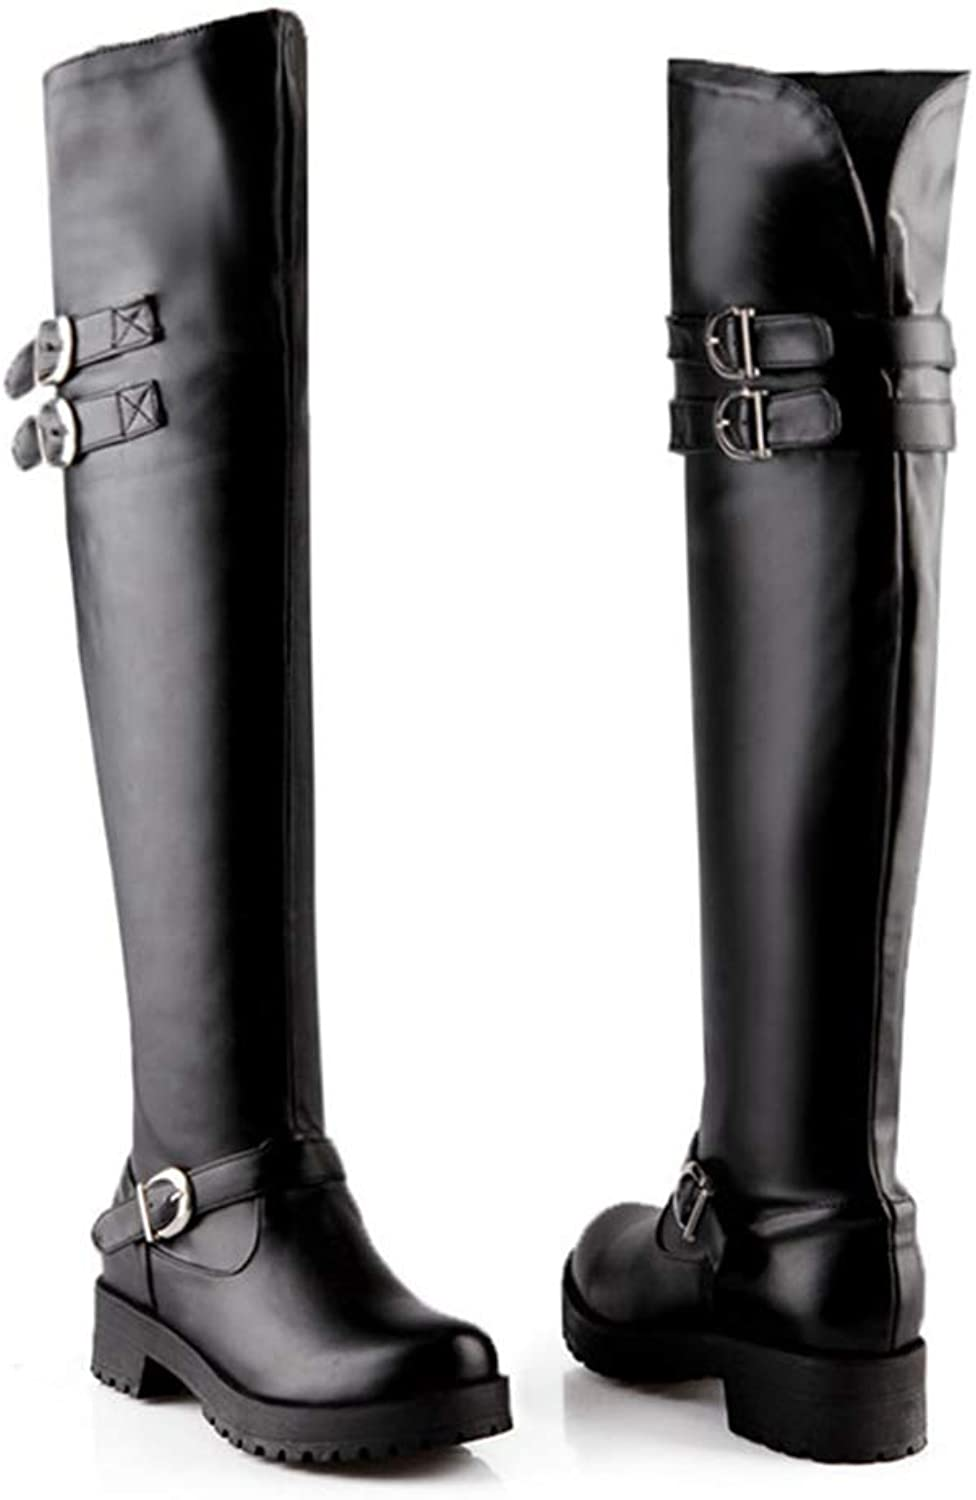 Over The Knee Boots Woman Fashion Punk Med Heels Pu Soft Leather shoes